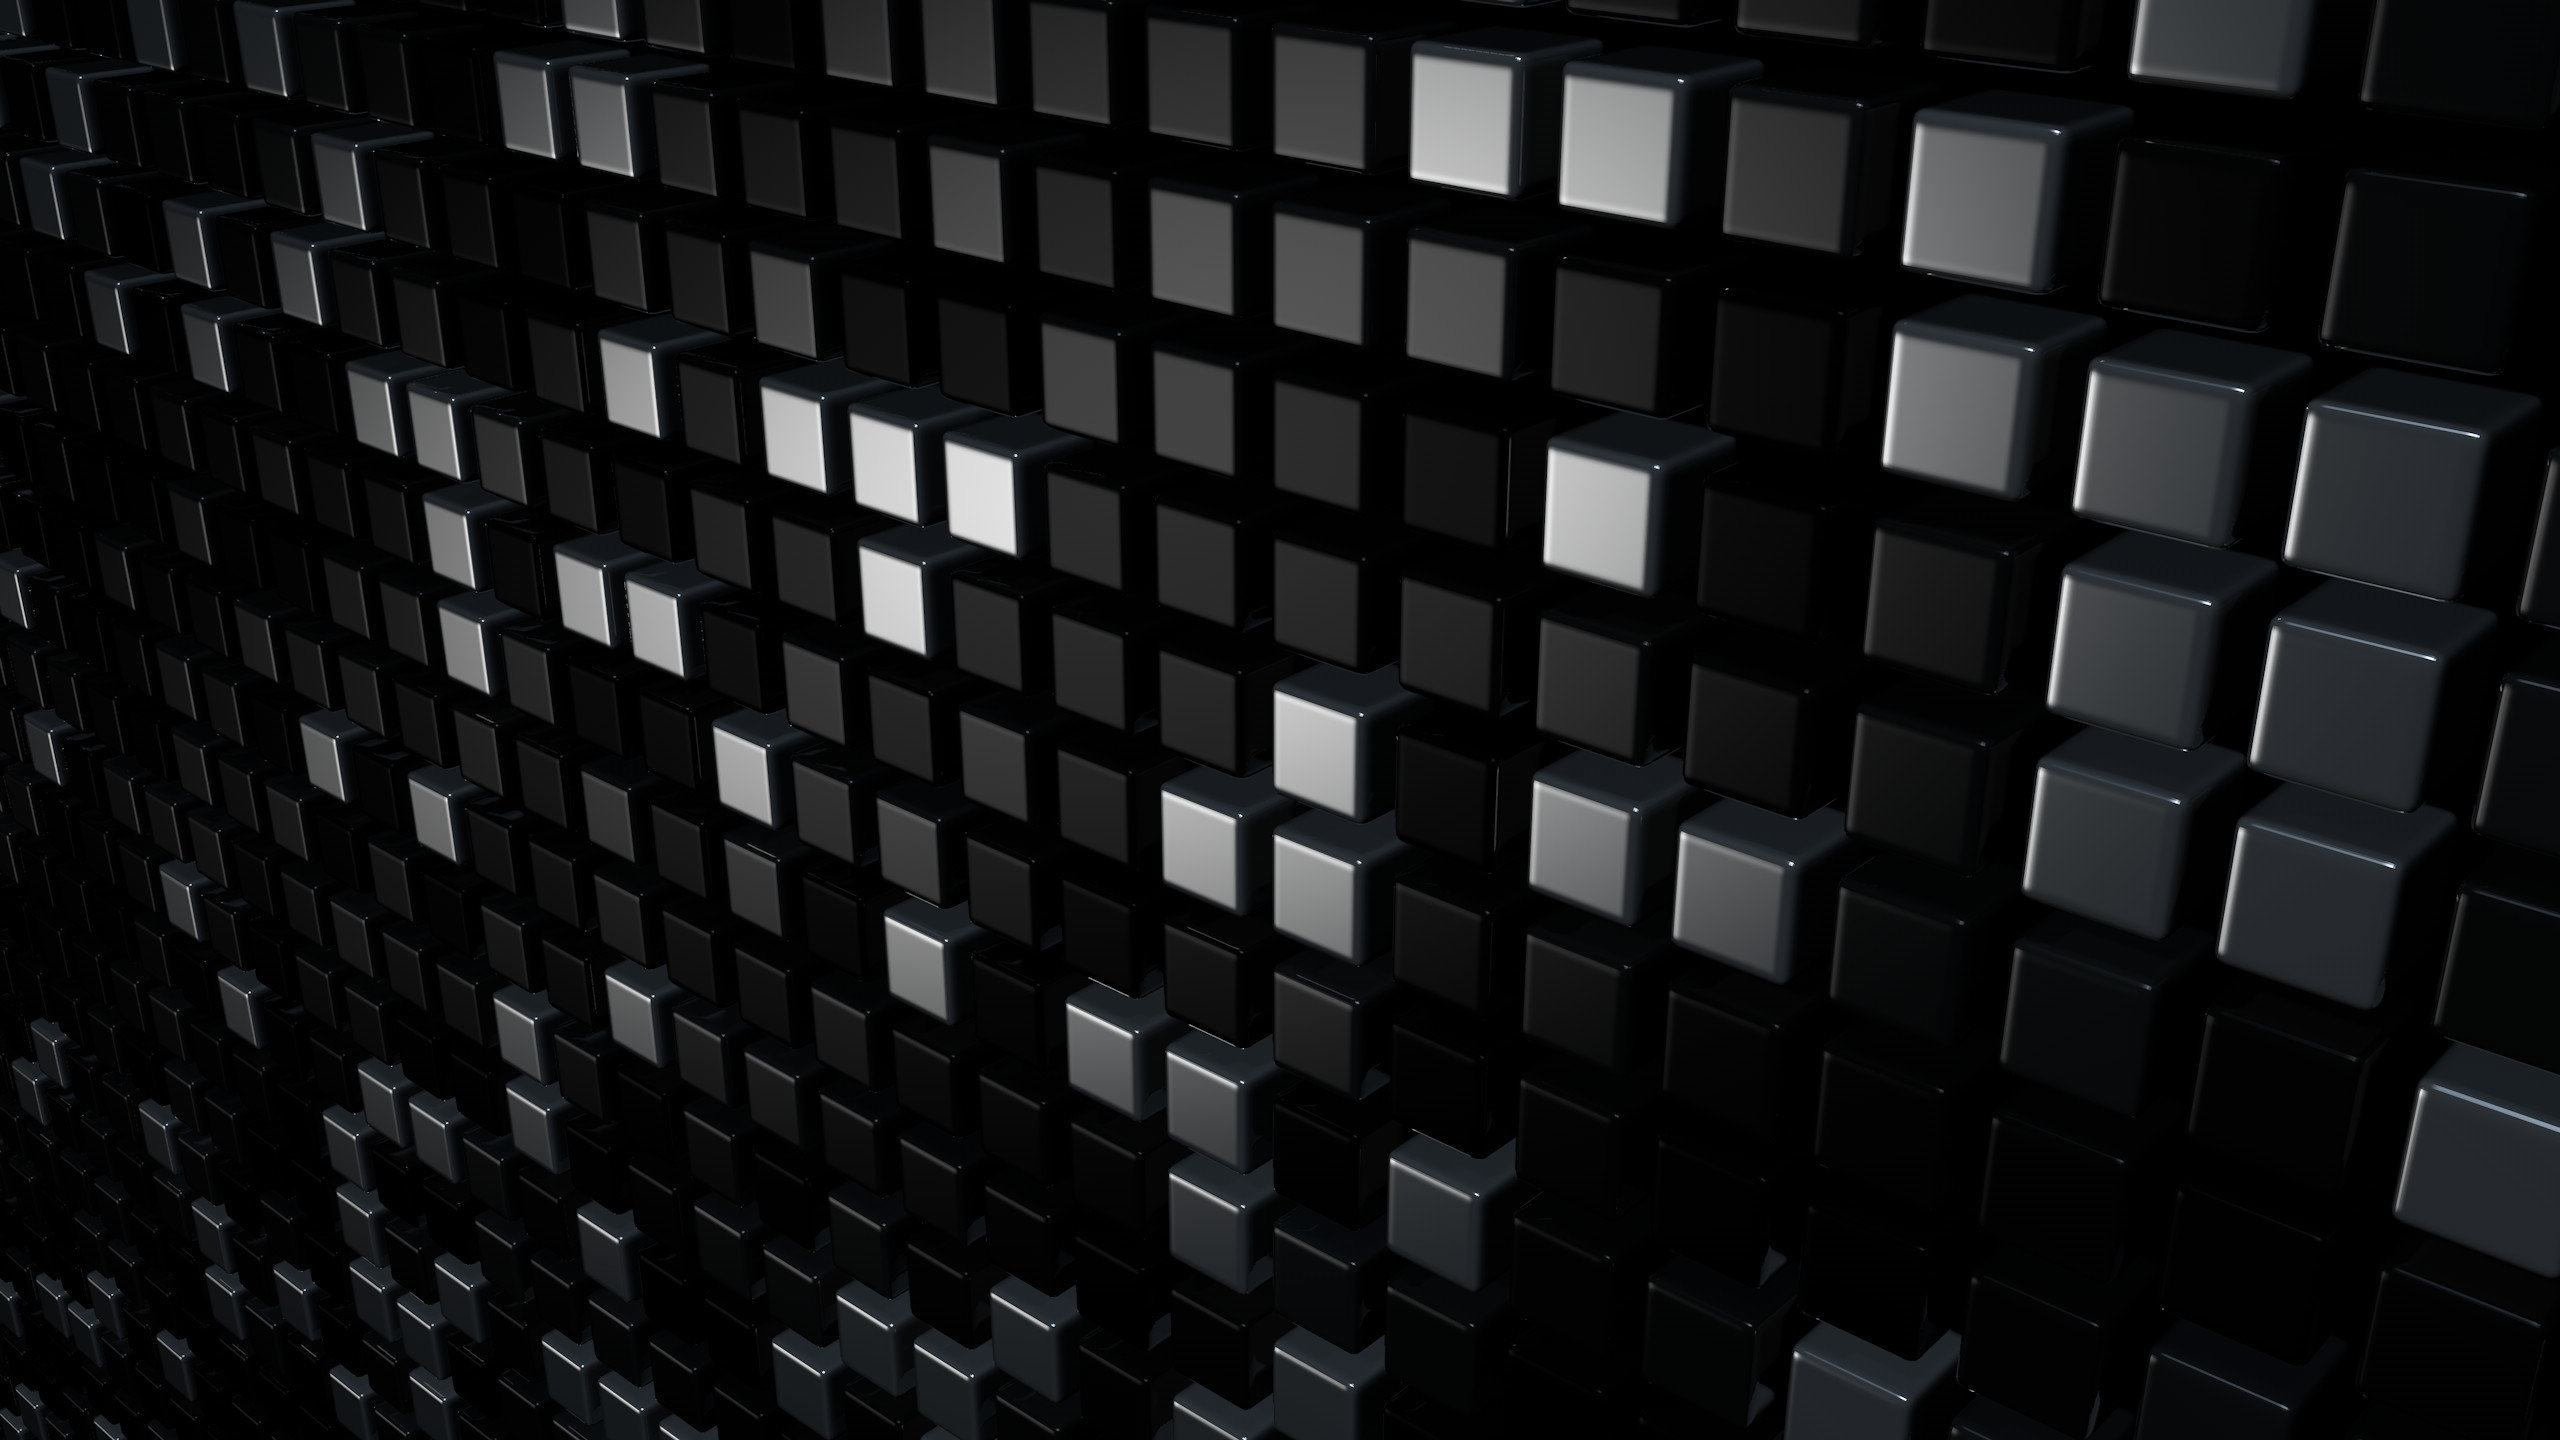 Free Cube high quality wallpaper ID:71565 for hd 2560x1440 desktop